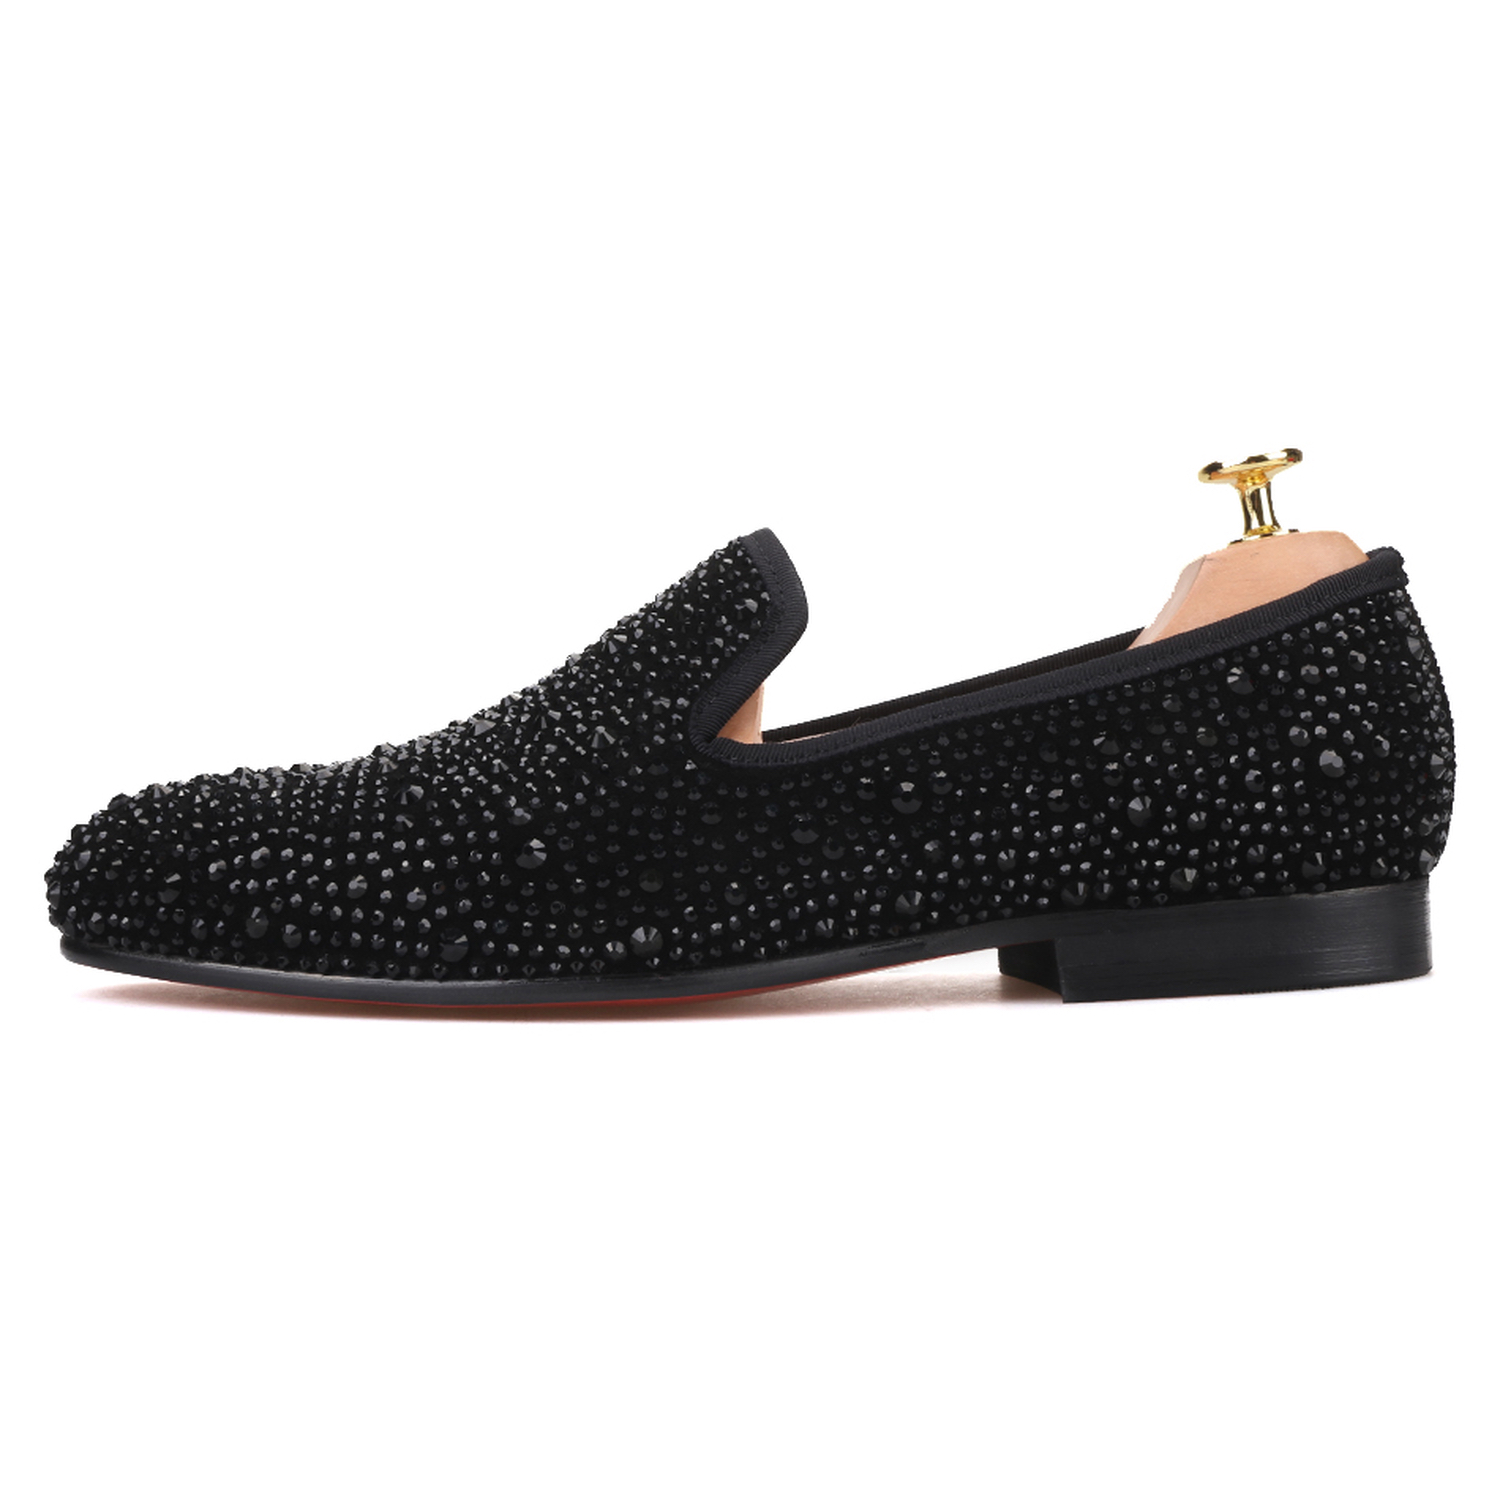 2fd52491cbb Black Crystals Suede Loafers - Merlutti